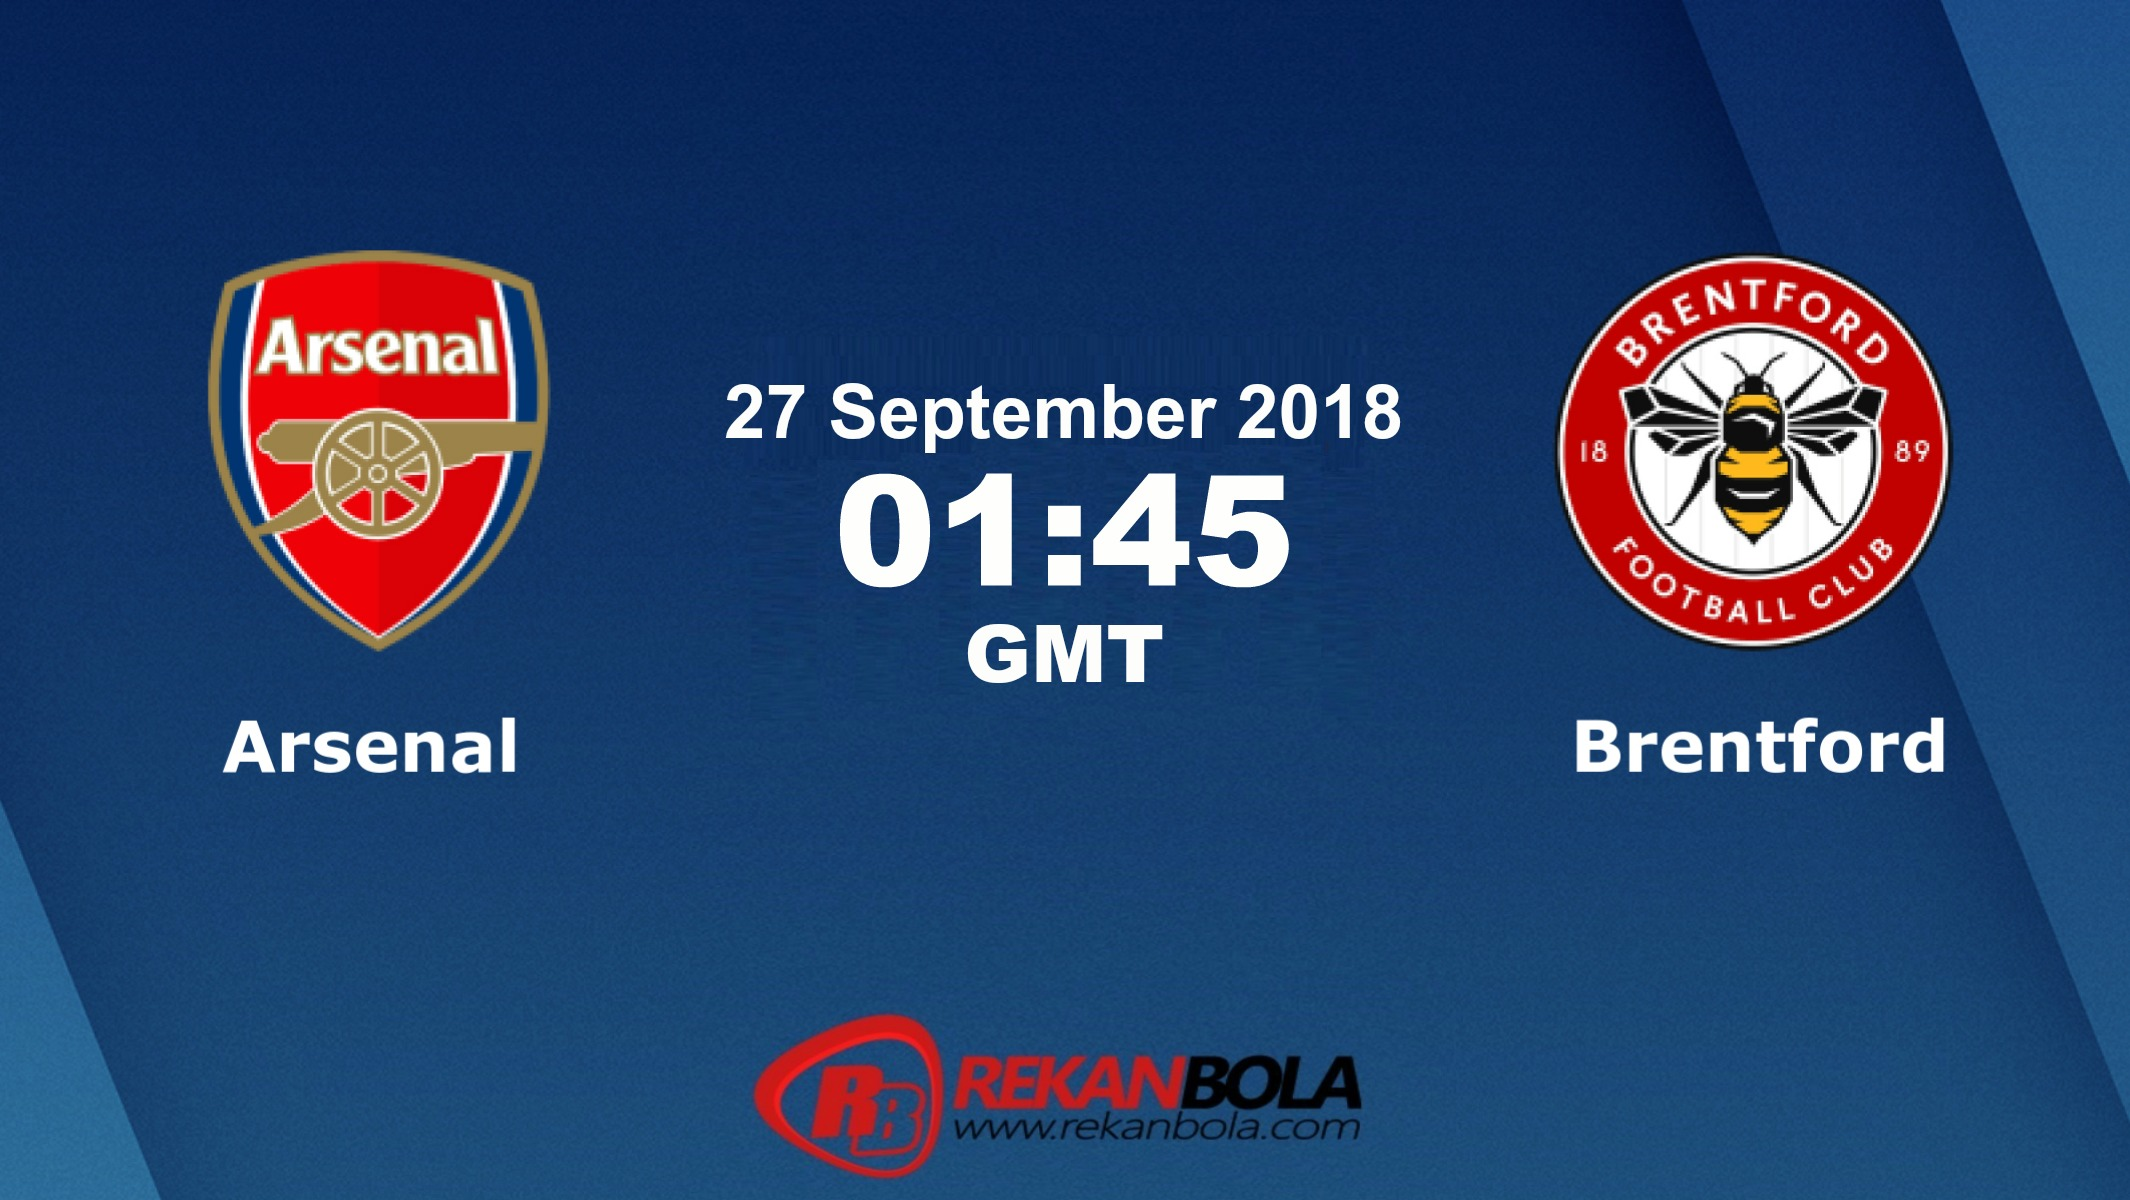 Nonton Siaran Live Streaming Arsenal Vs Brentford 27 September 2018